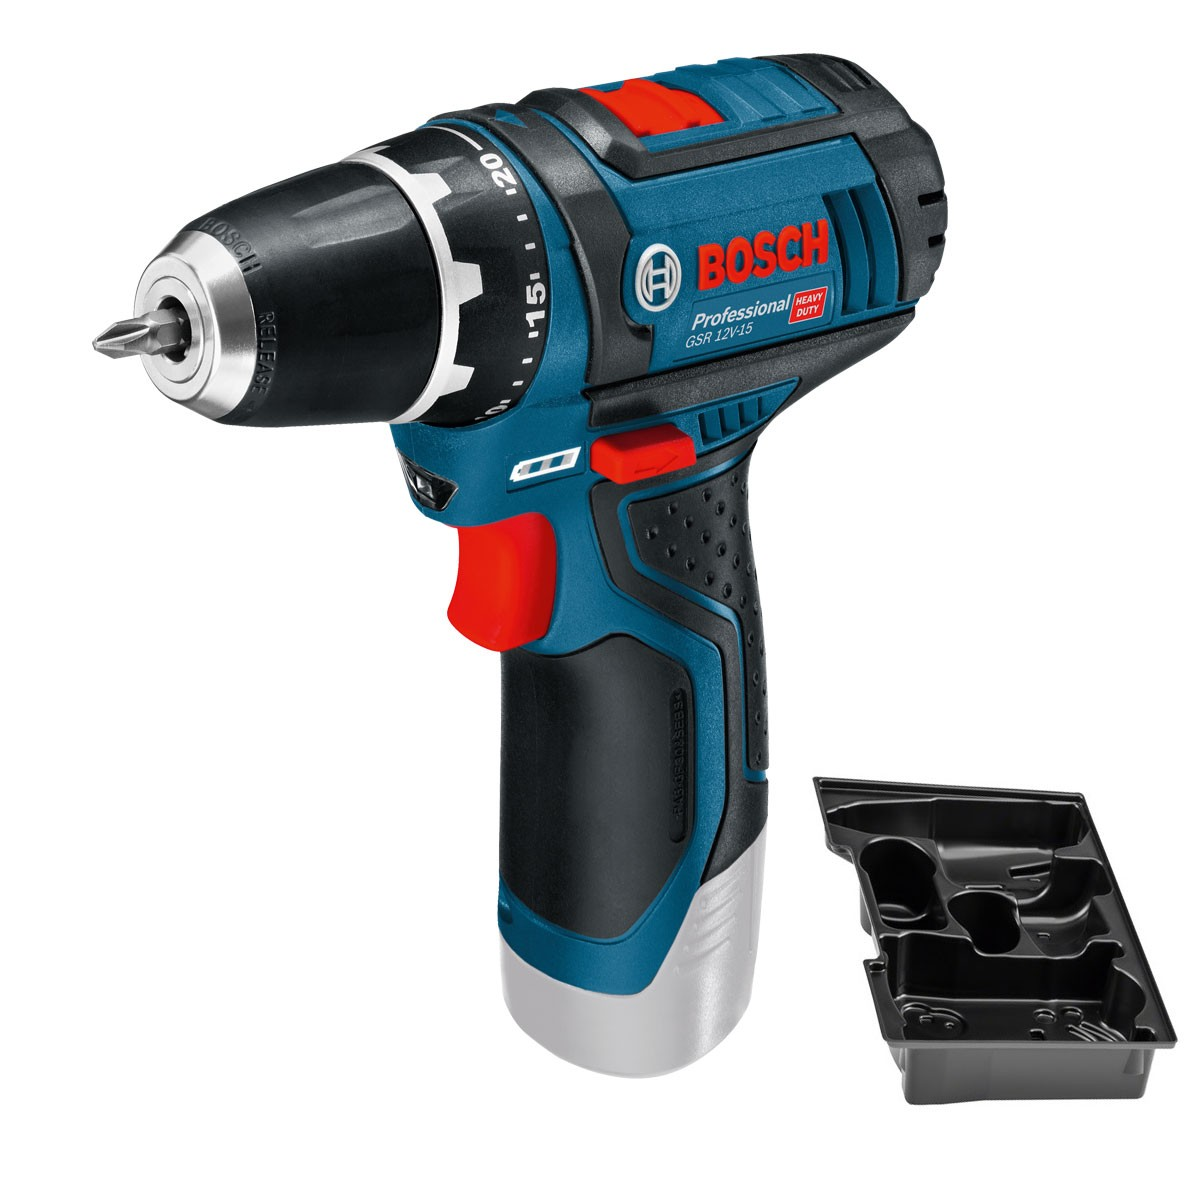 bosch gsr 12v 15 professional drill driver body only in carton powertool world. Black Bedroom Furniture Sets. Home Design Ideas